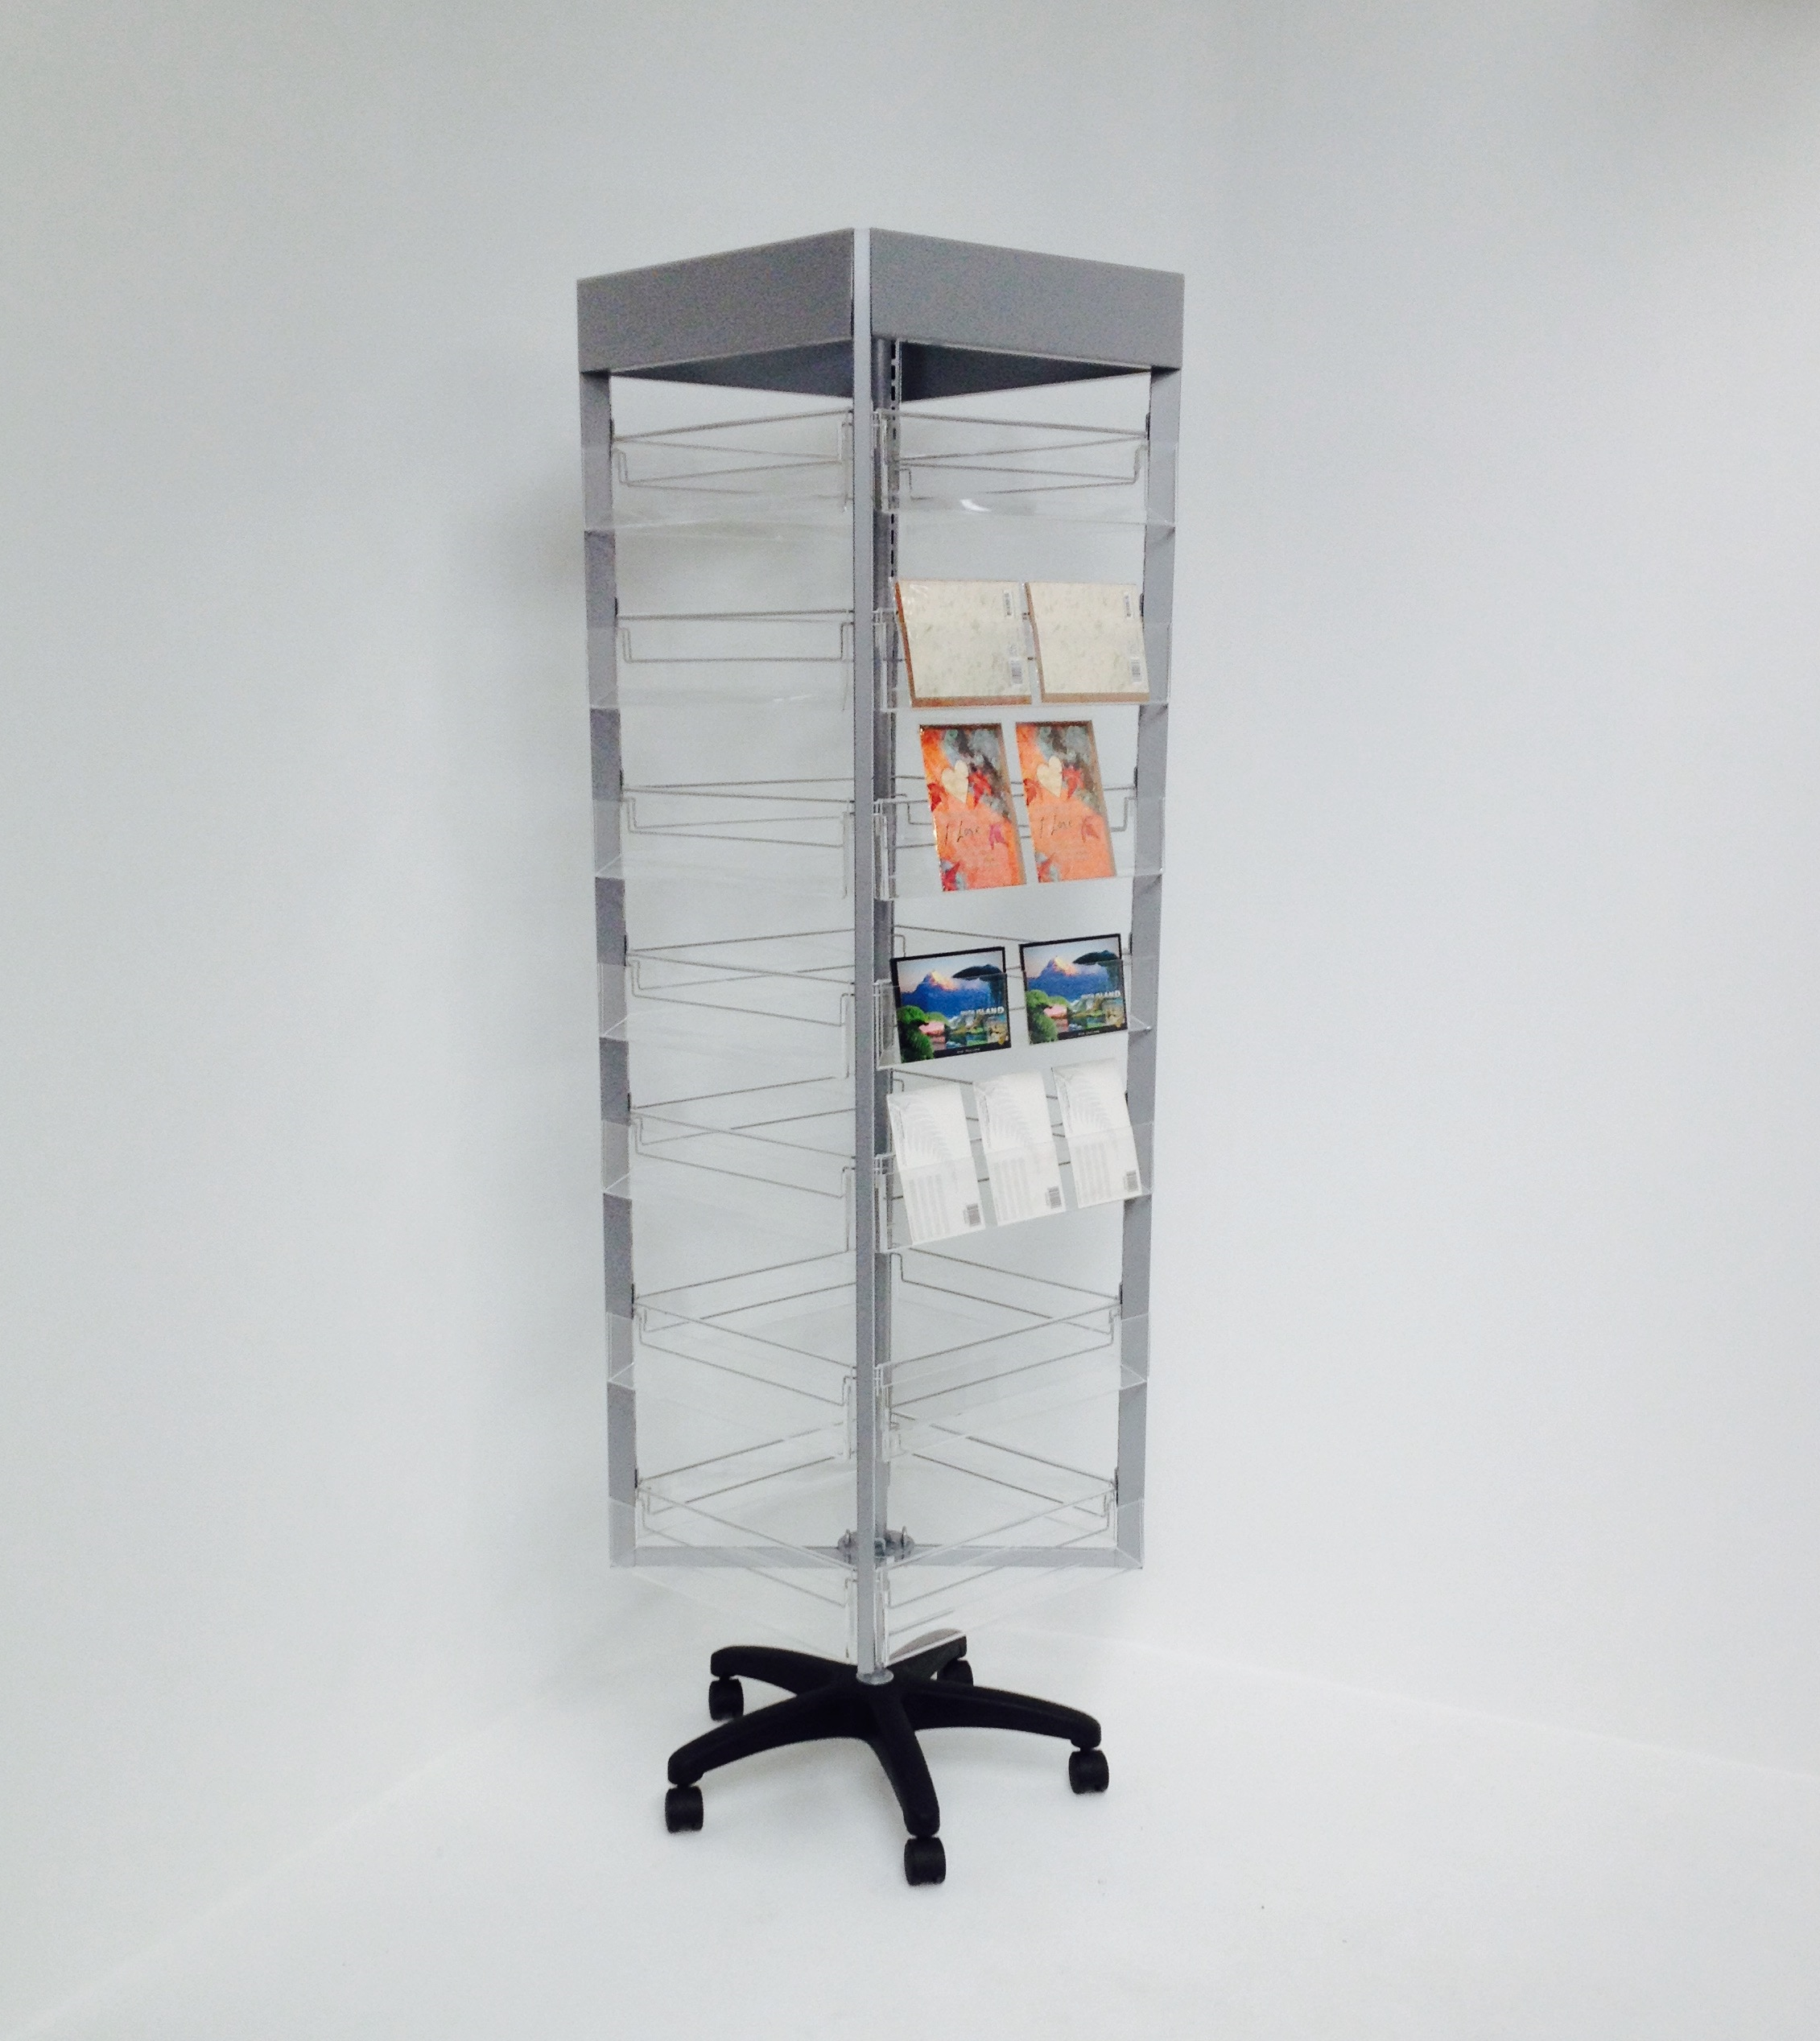 Exhibition Stands Nz : Rotating display stand with acrylic pockets wire